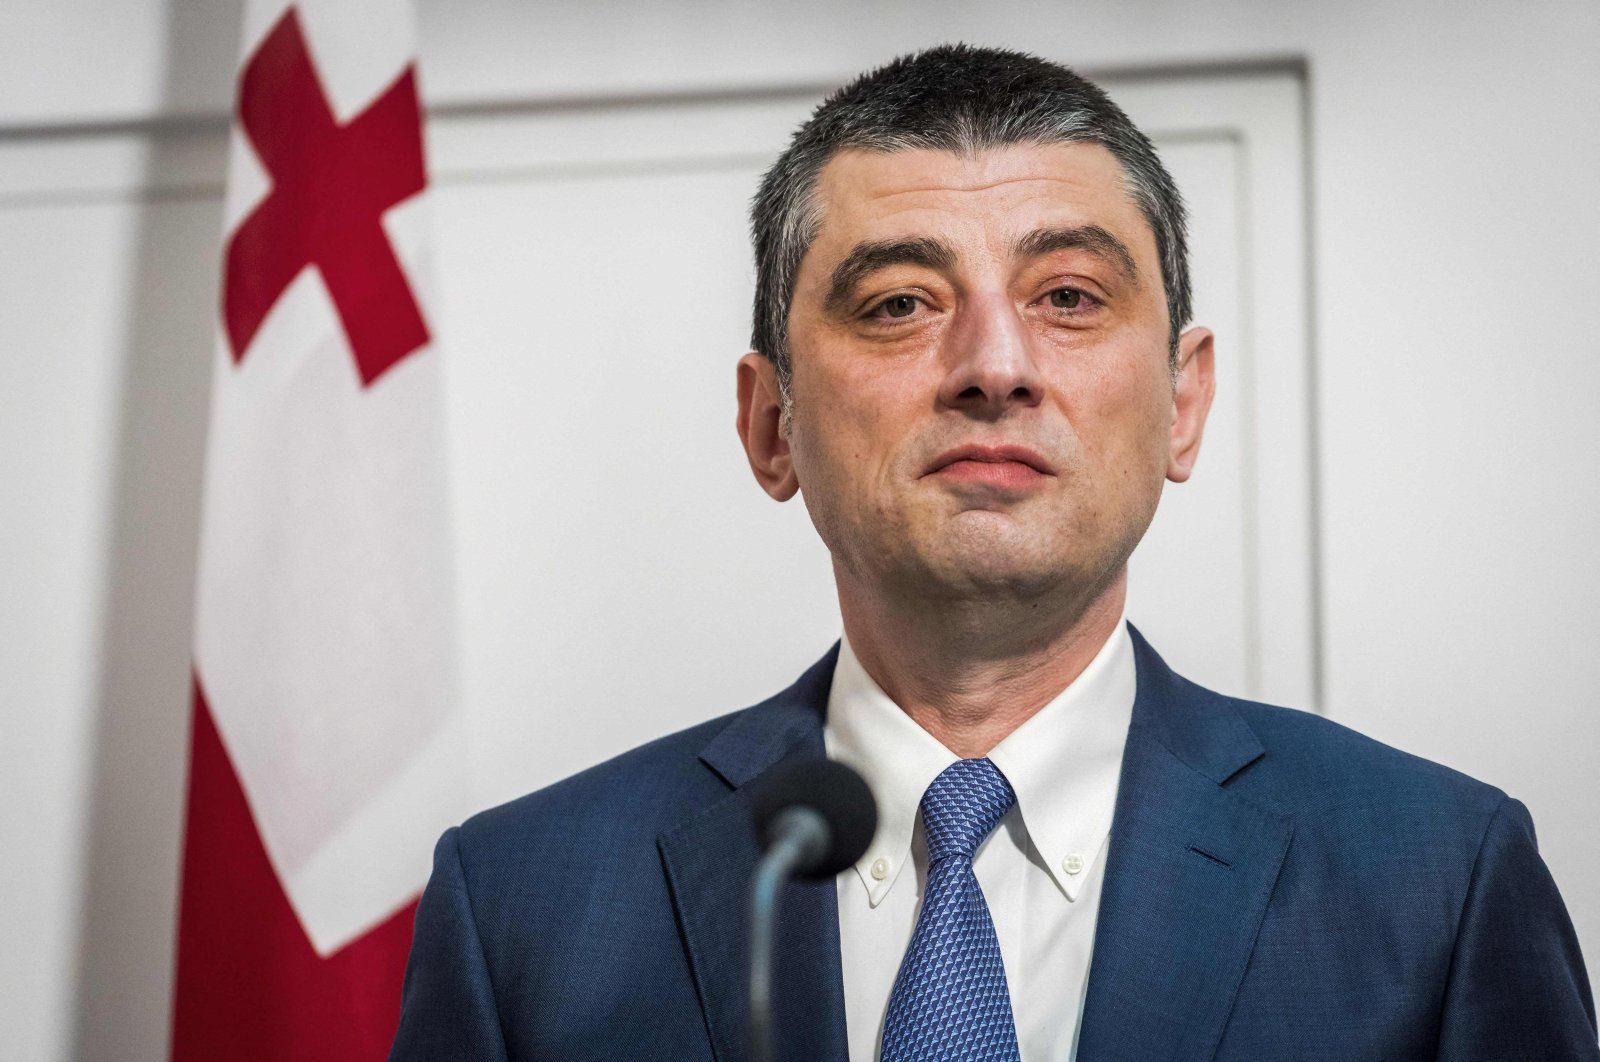 Georgia's Prime Minister Giorgi Gakharia attends a press conference at the Catshuis prior to a bilateral meeting and a working dinner, in The Hague, Netherlands, Nov. 4, 2019. (AFP Photo)